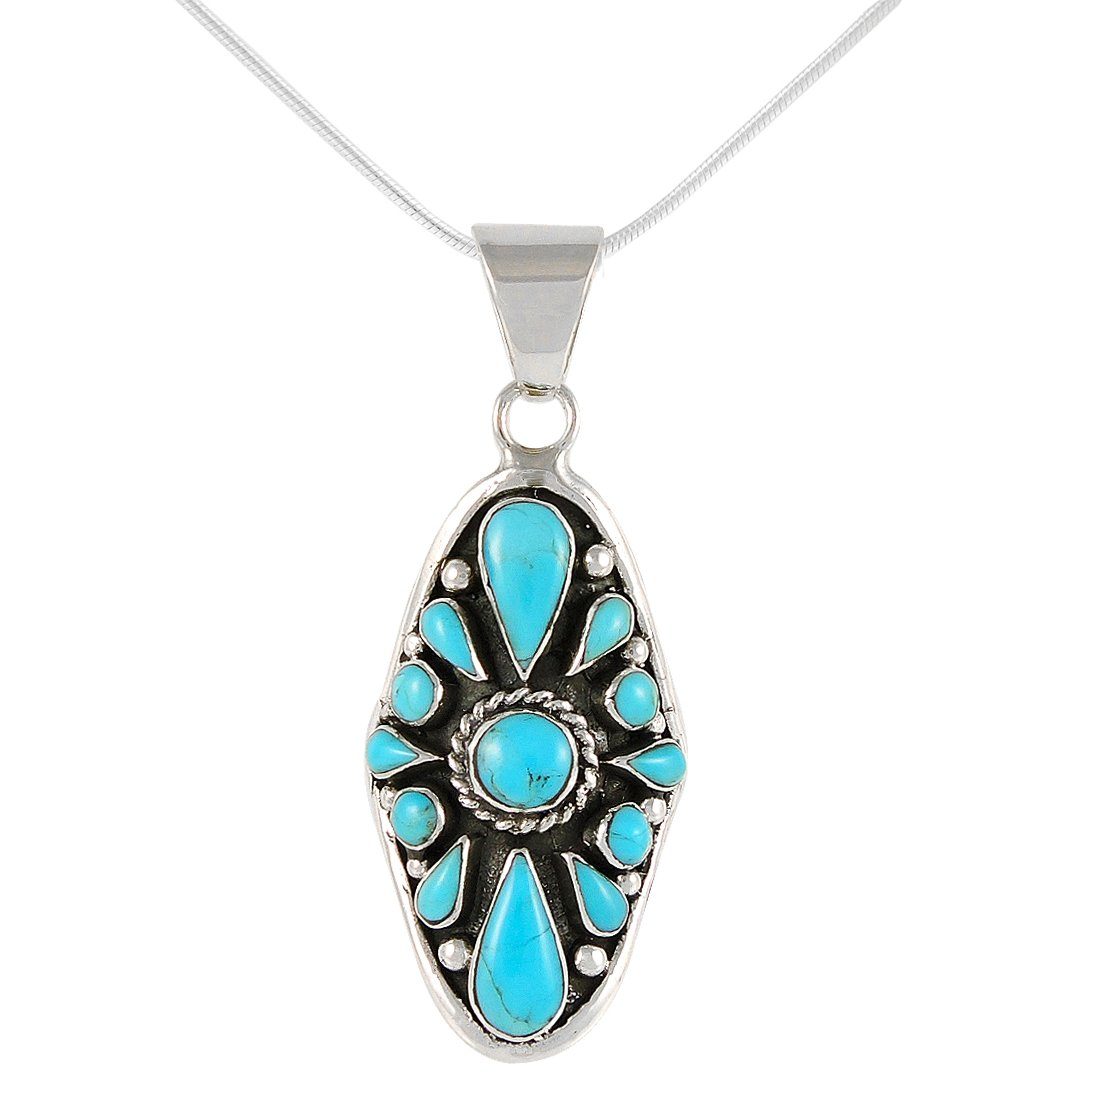 Turquoise Necklace 925 Sterling Silver Pendant & 18'' Chain (Blue)